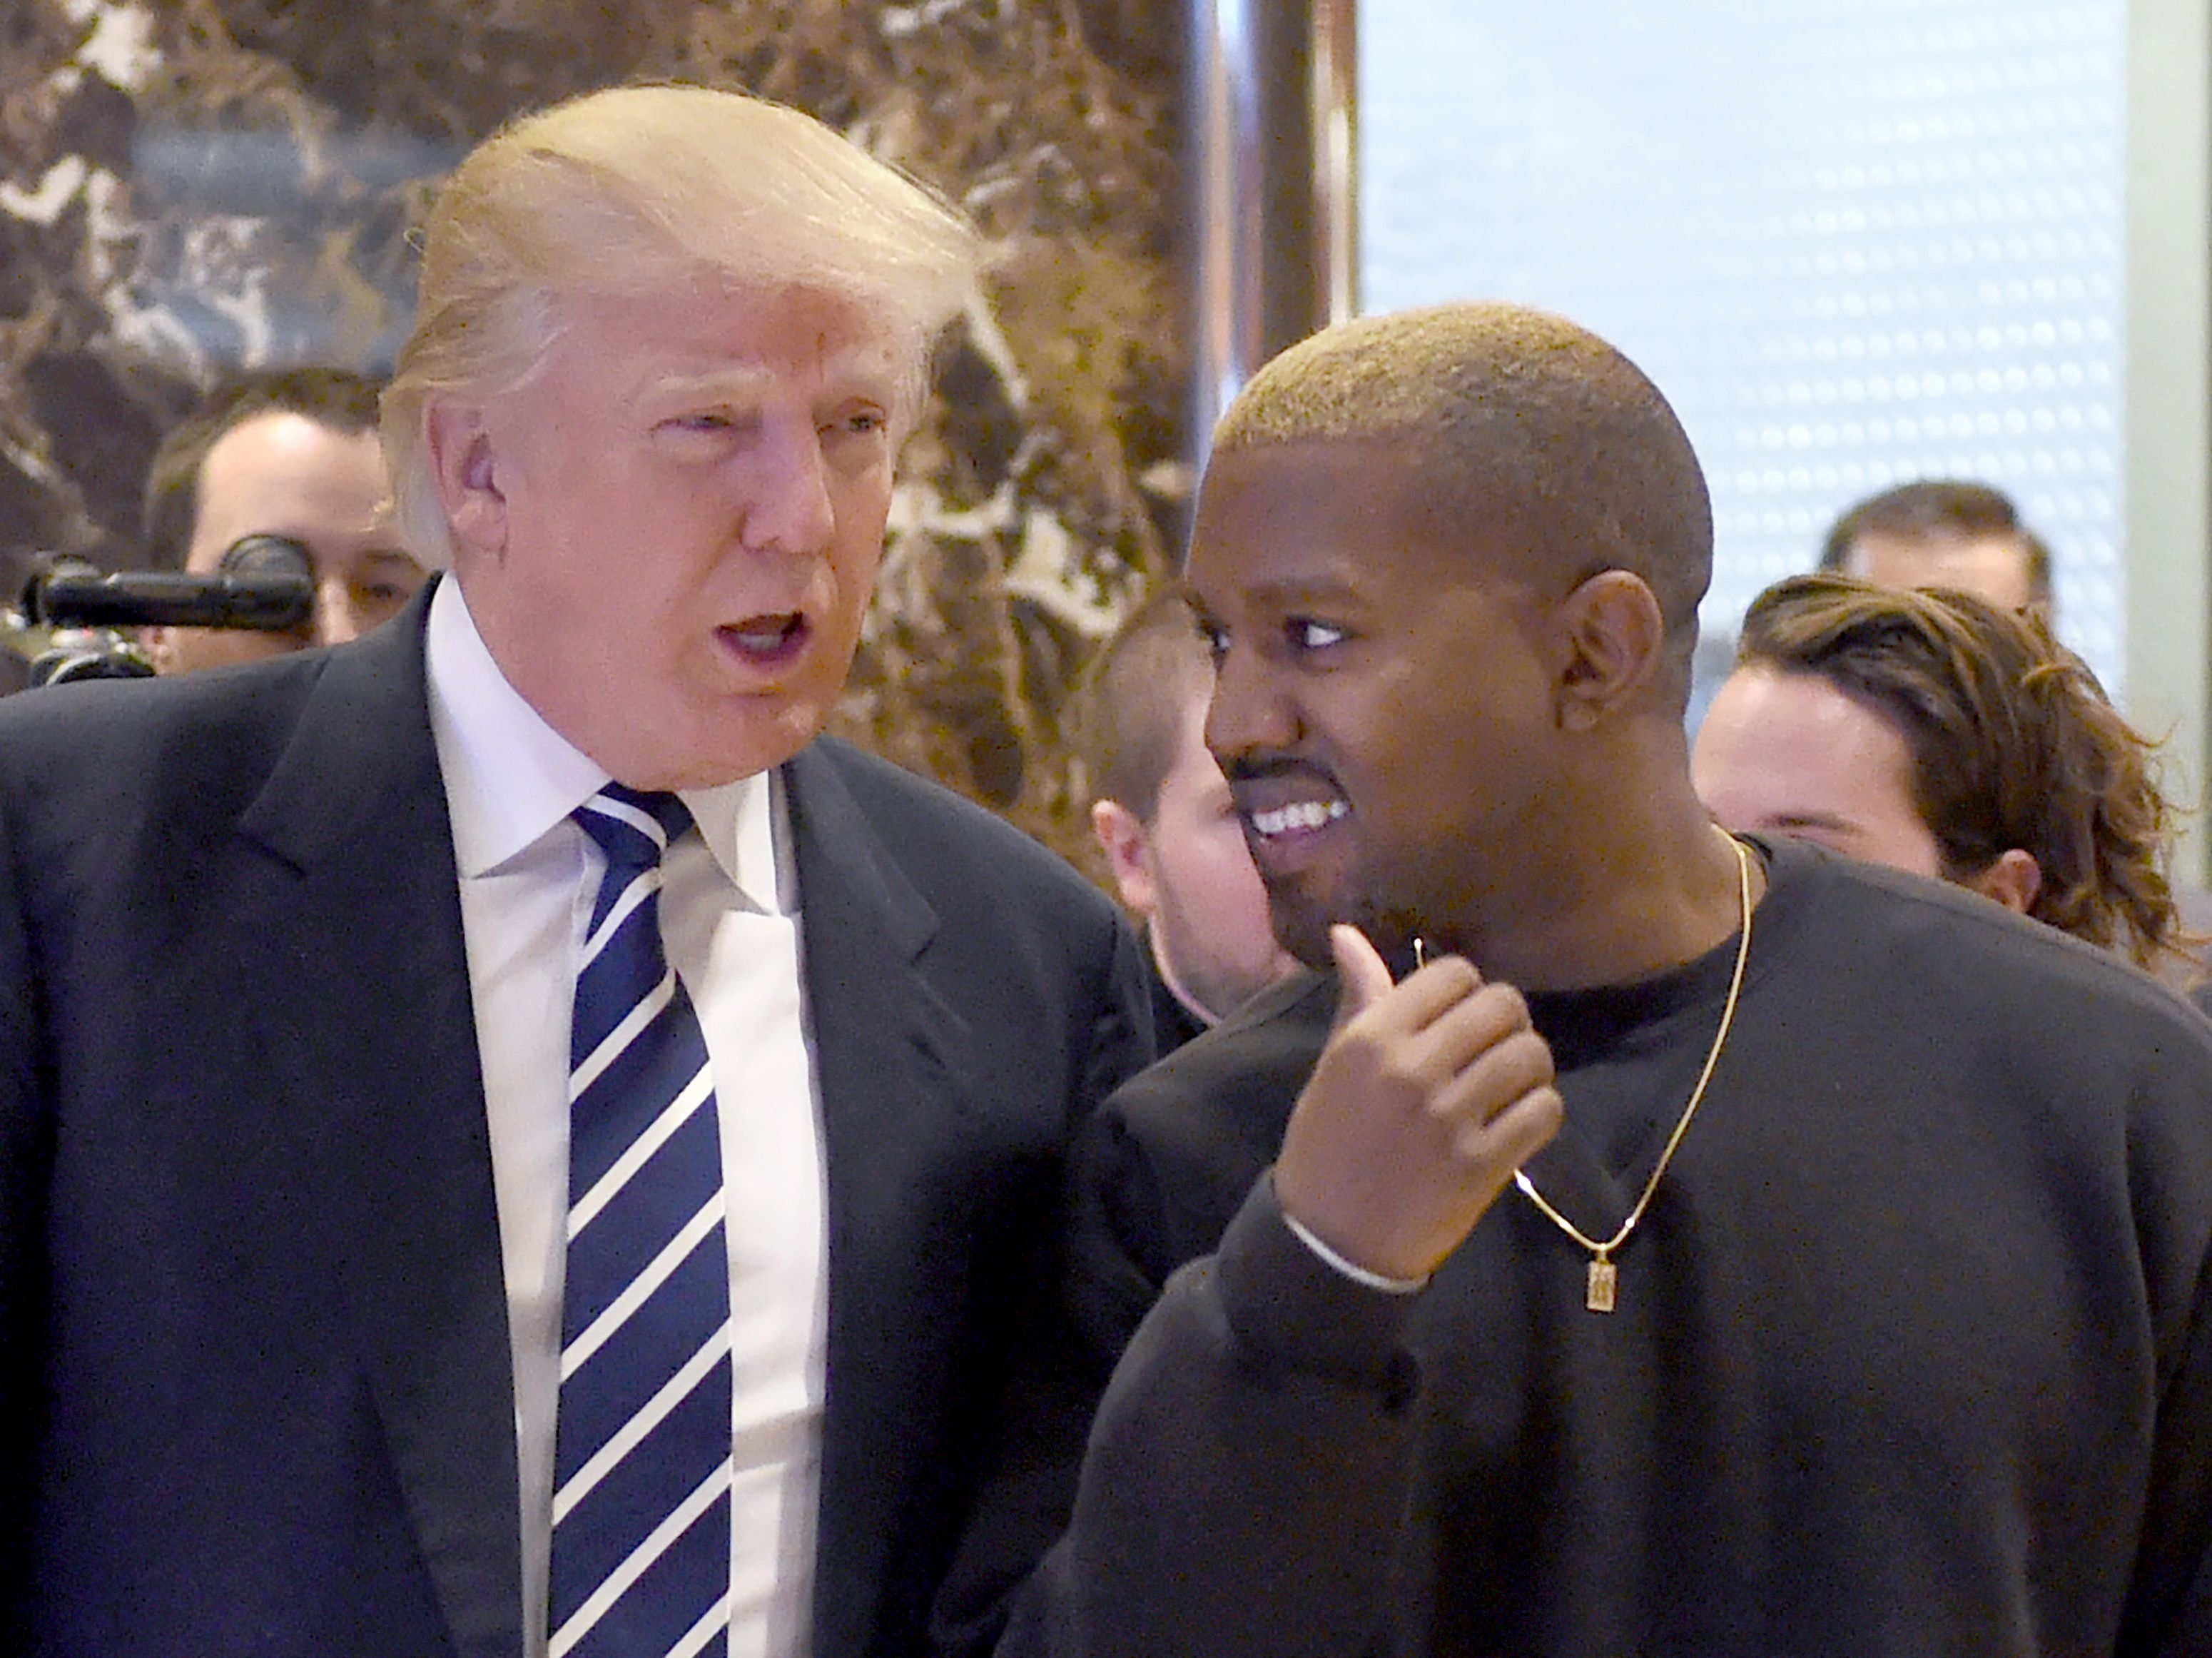 Kanye West Calls Donald Trump 'My Brother' During Astonishing Twitter Love-In